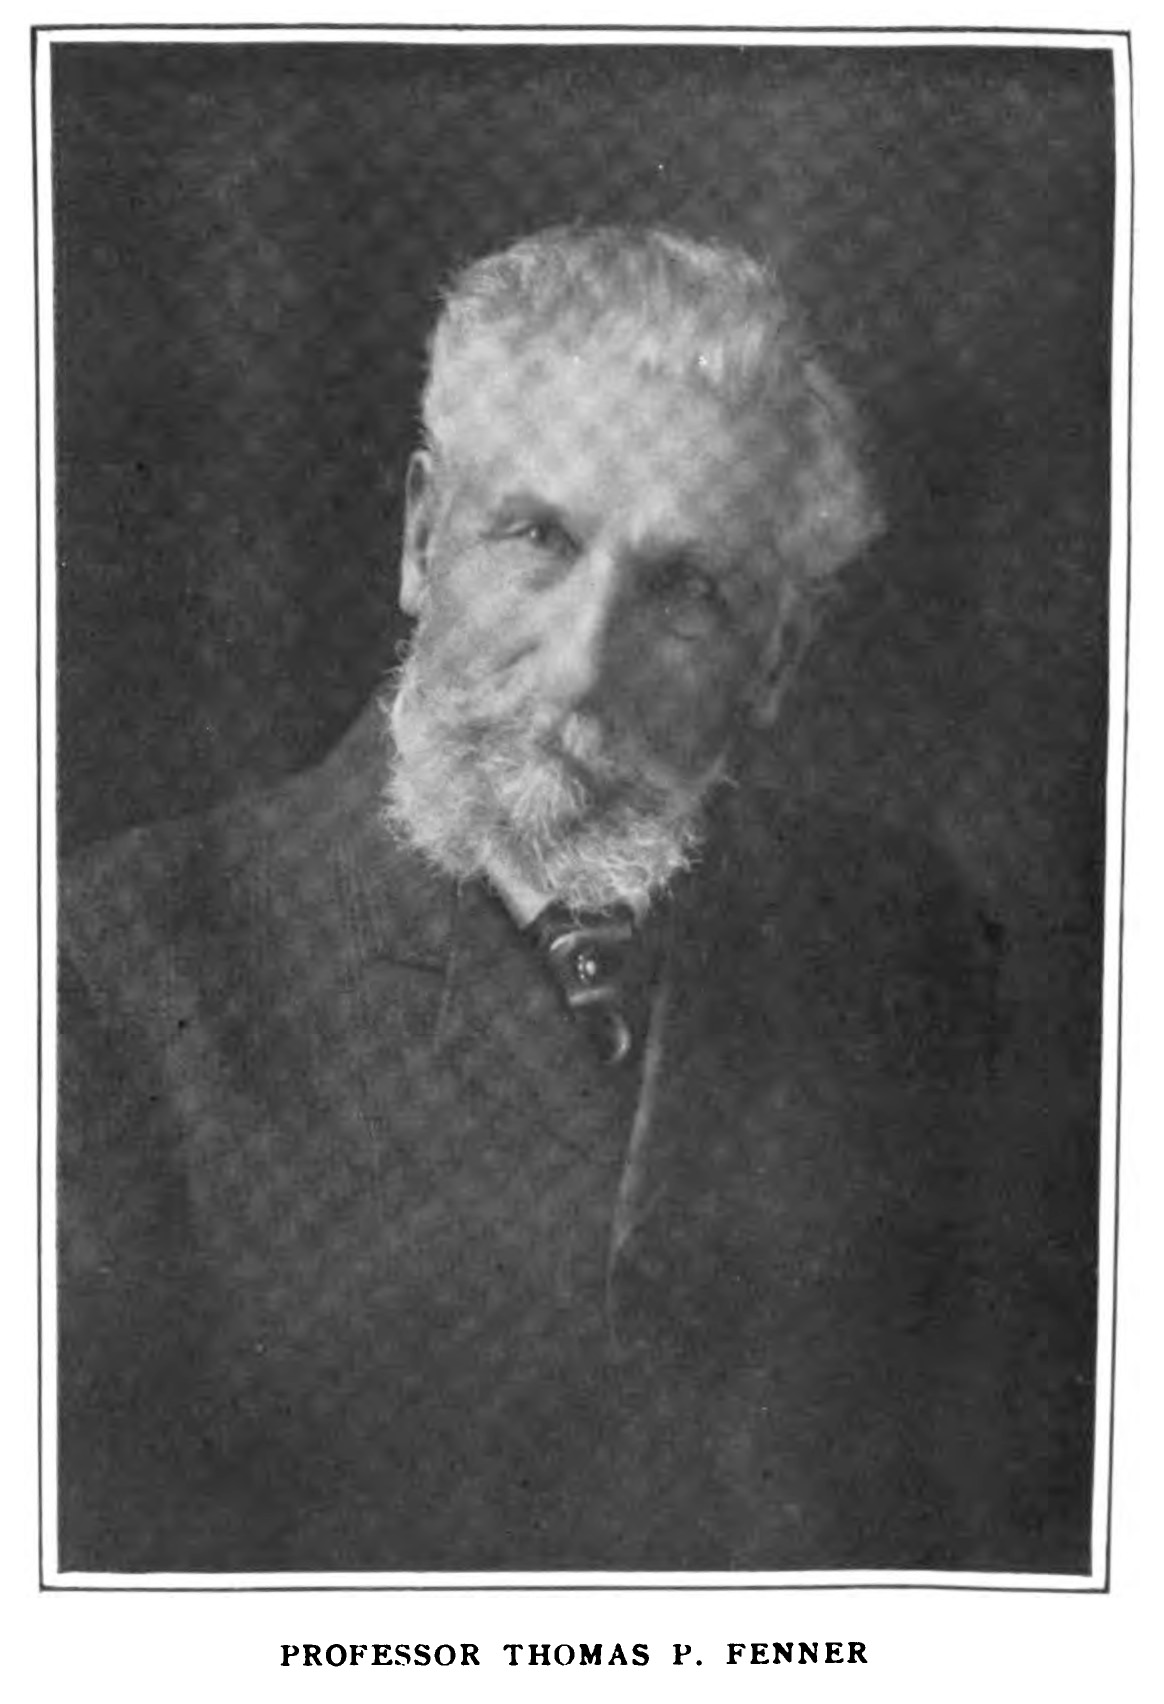 Thomas P. Fenner, undated photo, in  The Southern Workman (1912).